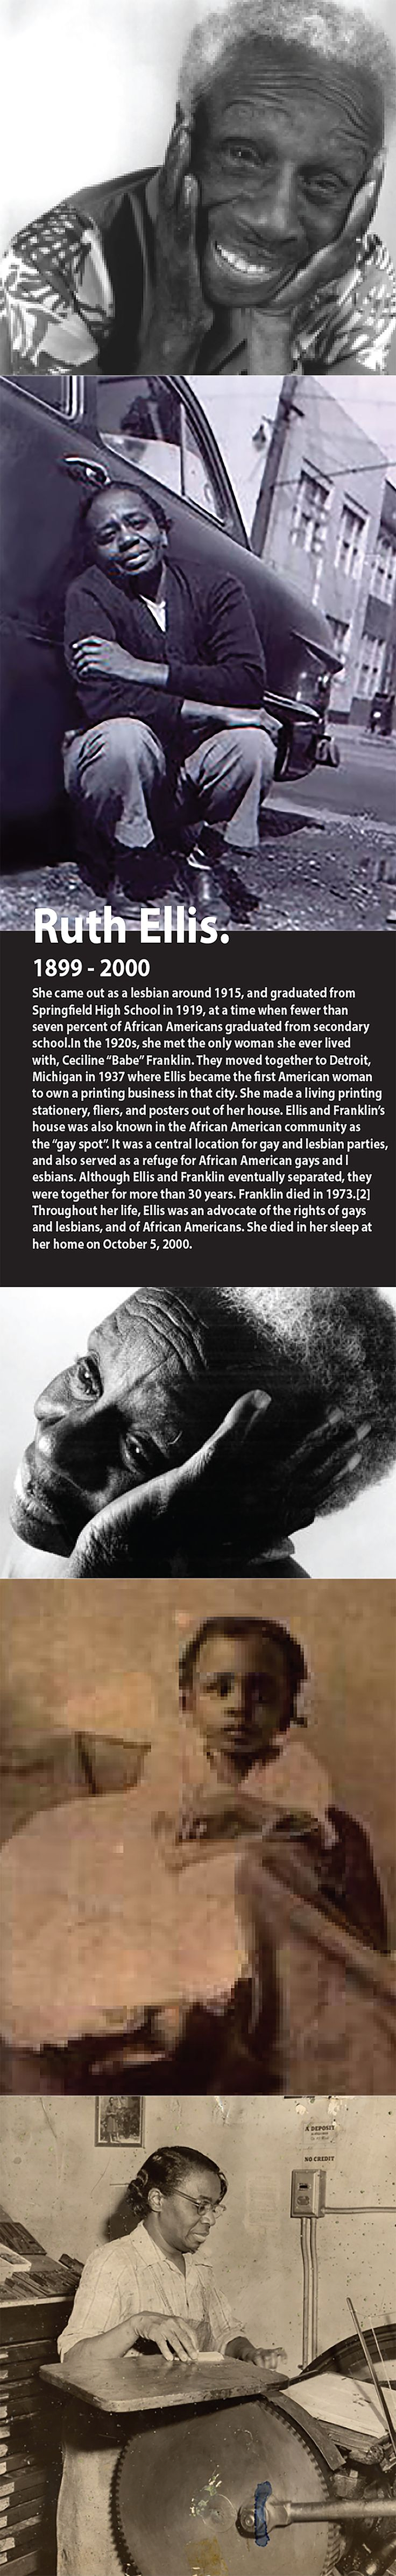 Ruth Ellis human rights activist. The mission of the Ruth Ellis Center is to provide short-term and long-term residential safe space and support services for runaway, homeless and at-risk gay, lesbian, bi-attractional, transgender and questioning youth.